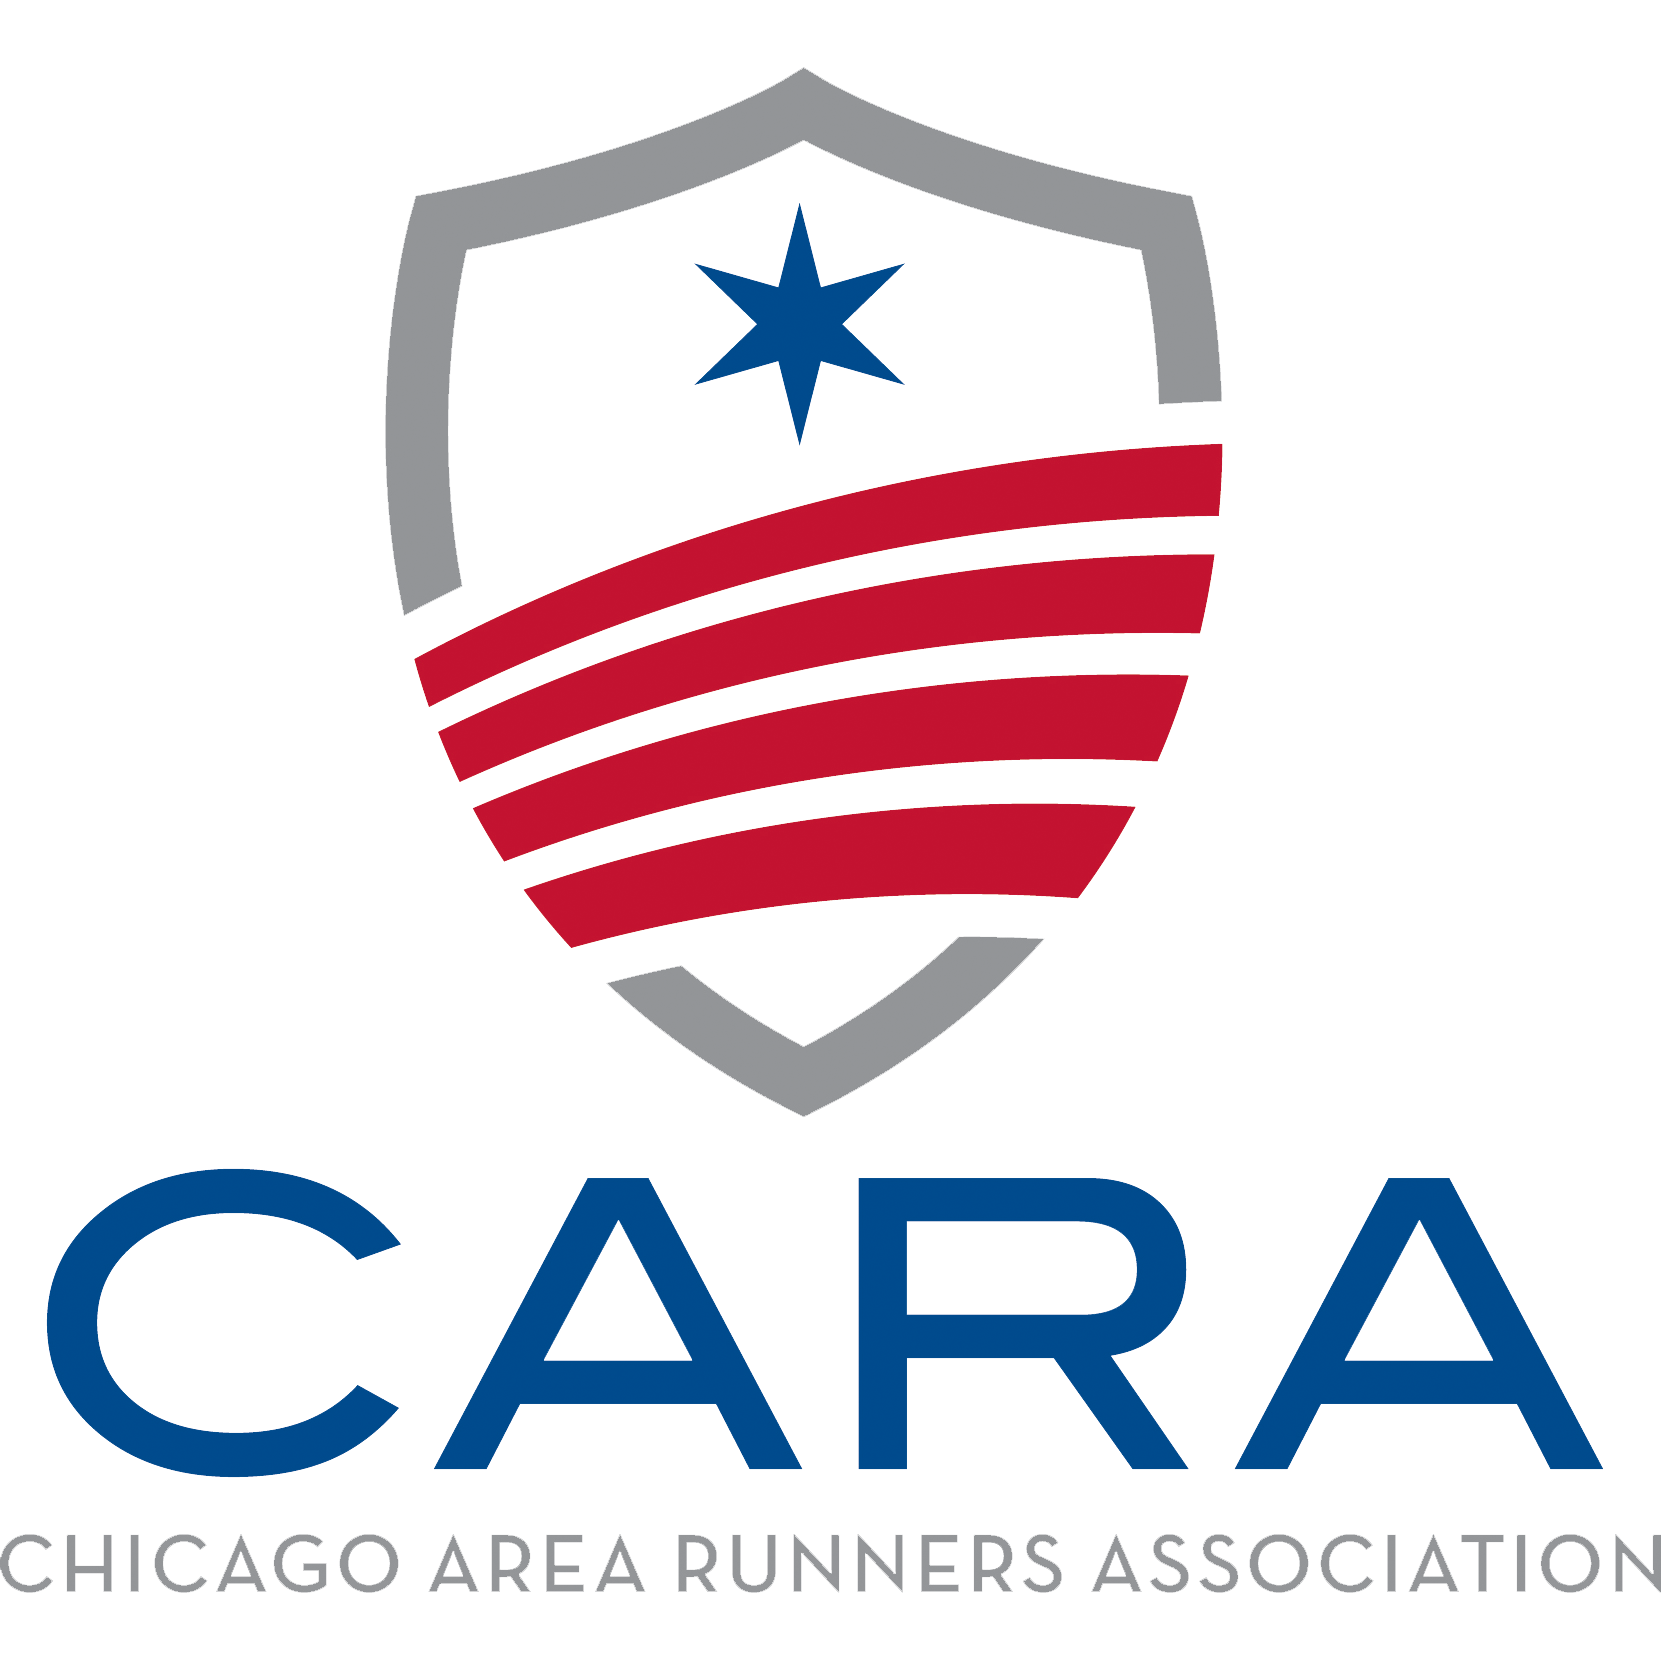 Chicago Area Runner's Association